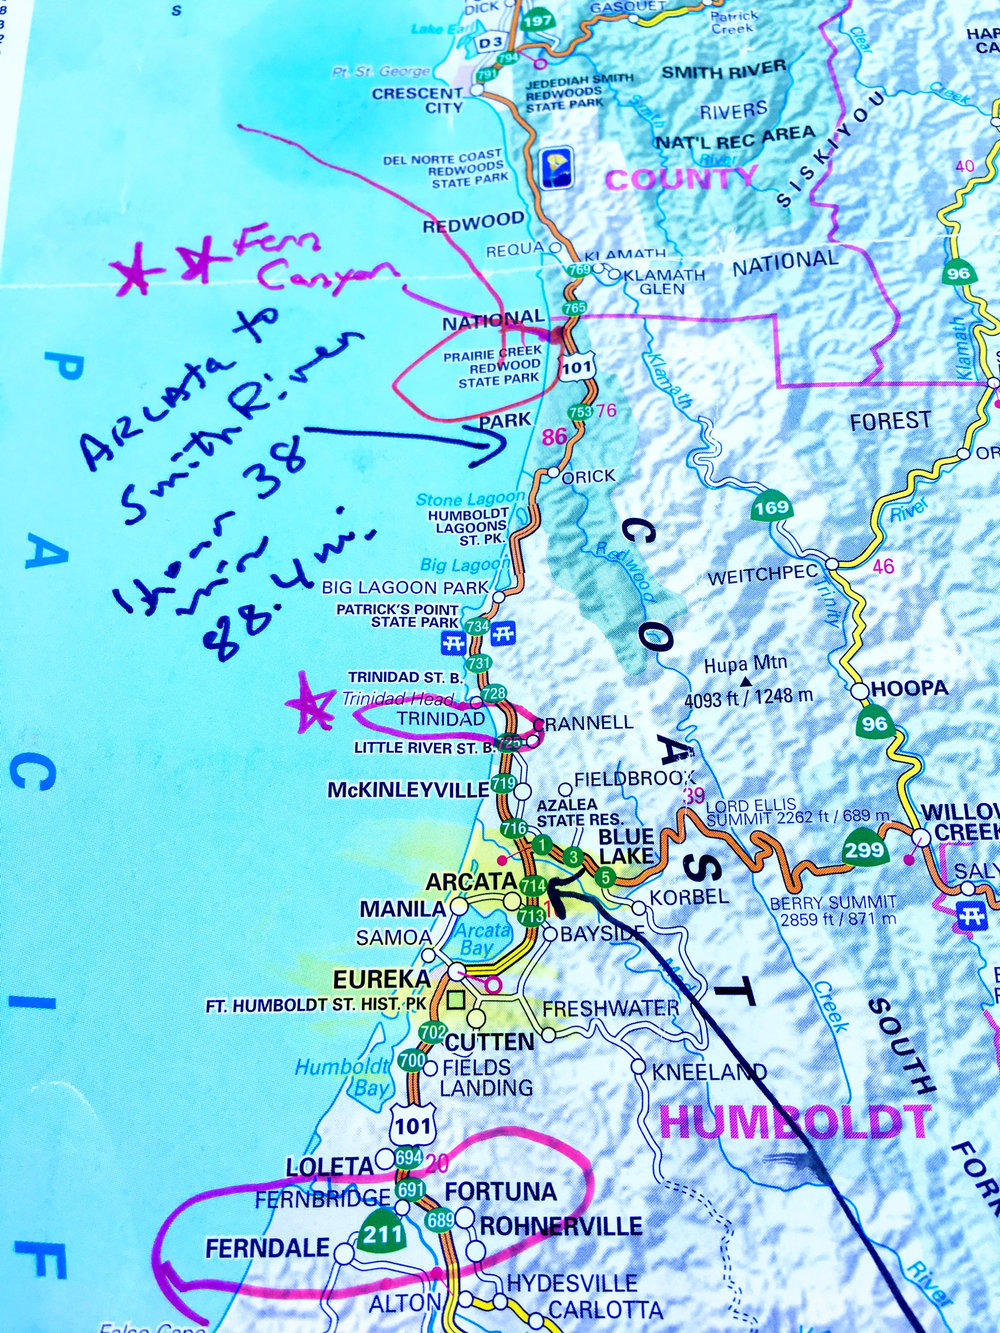 Map for road trip up the west coast starting in Malibu and ending in Portland